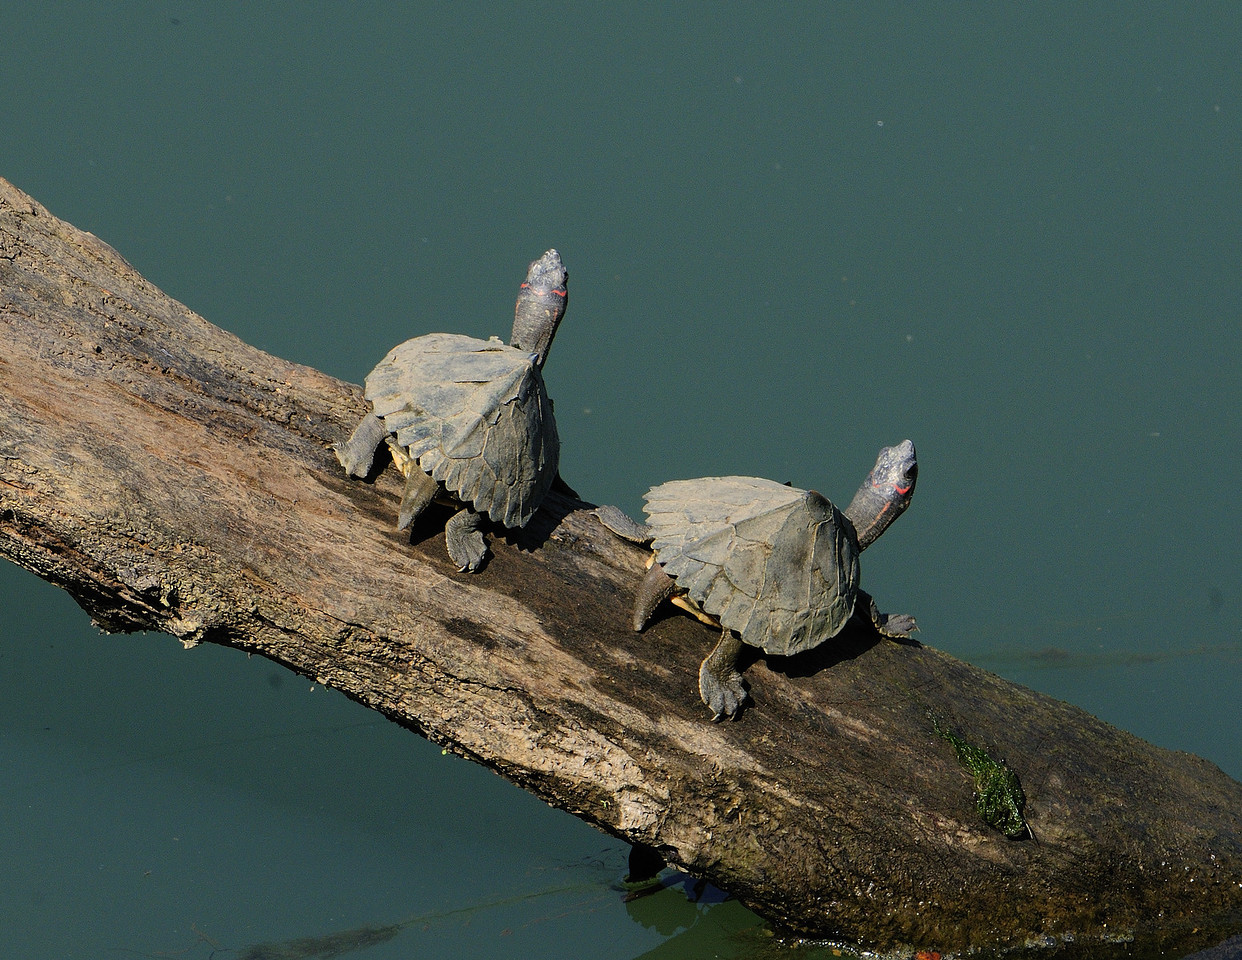 You look in your direction and I will look the other way. - Turtles